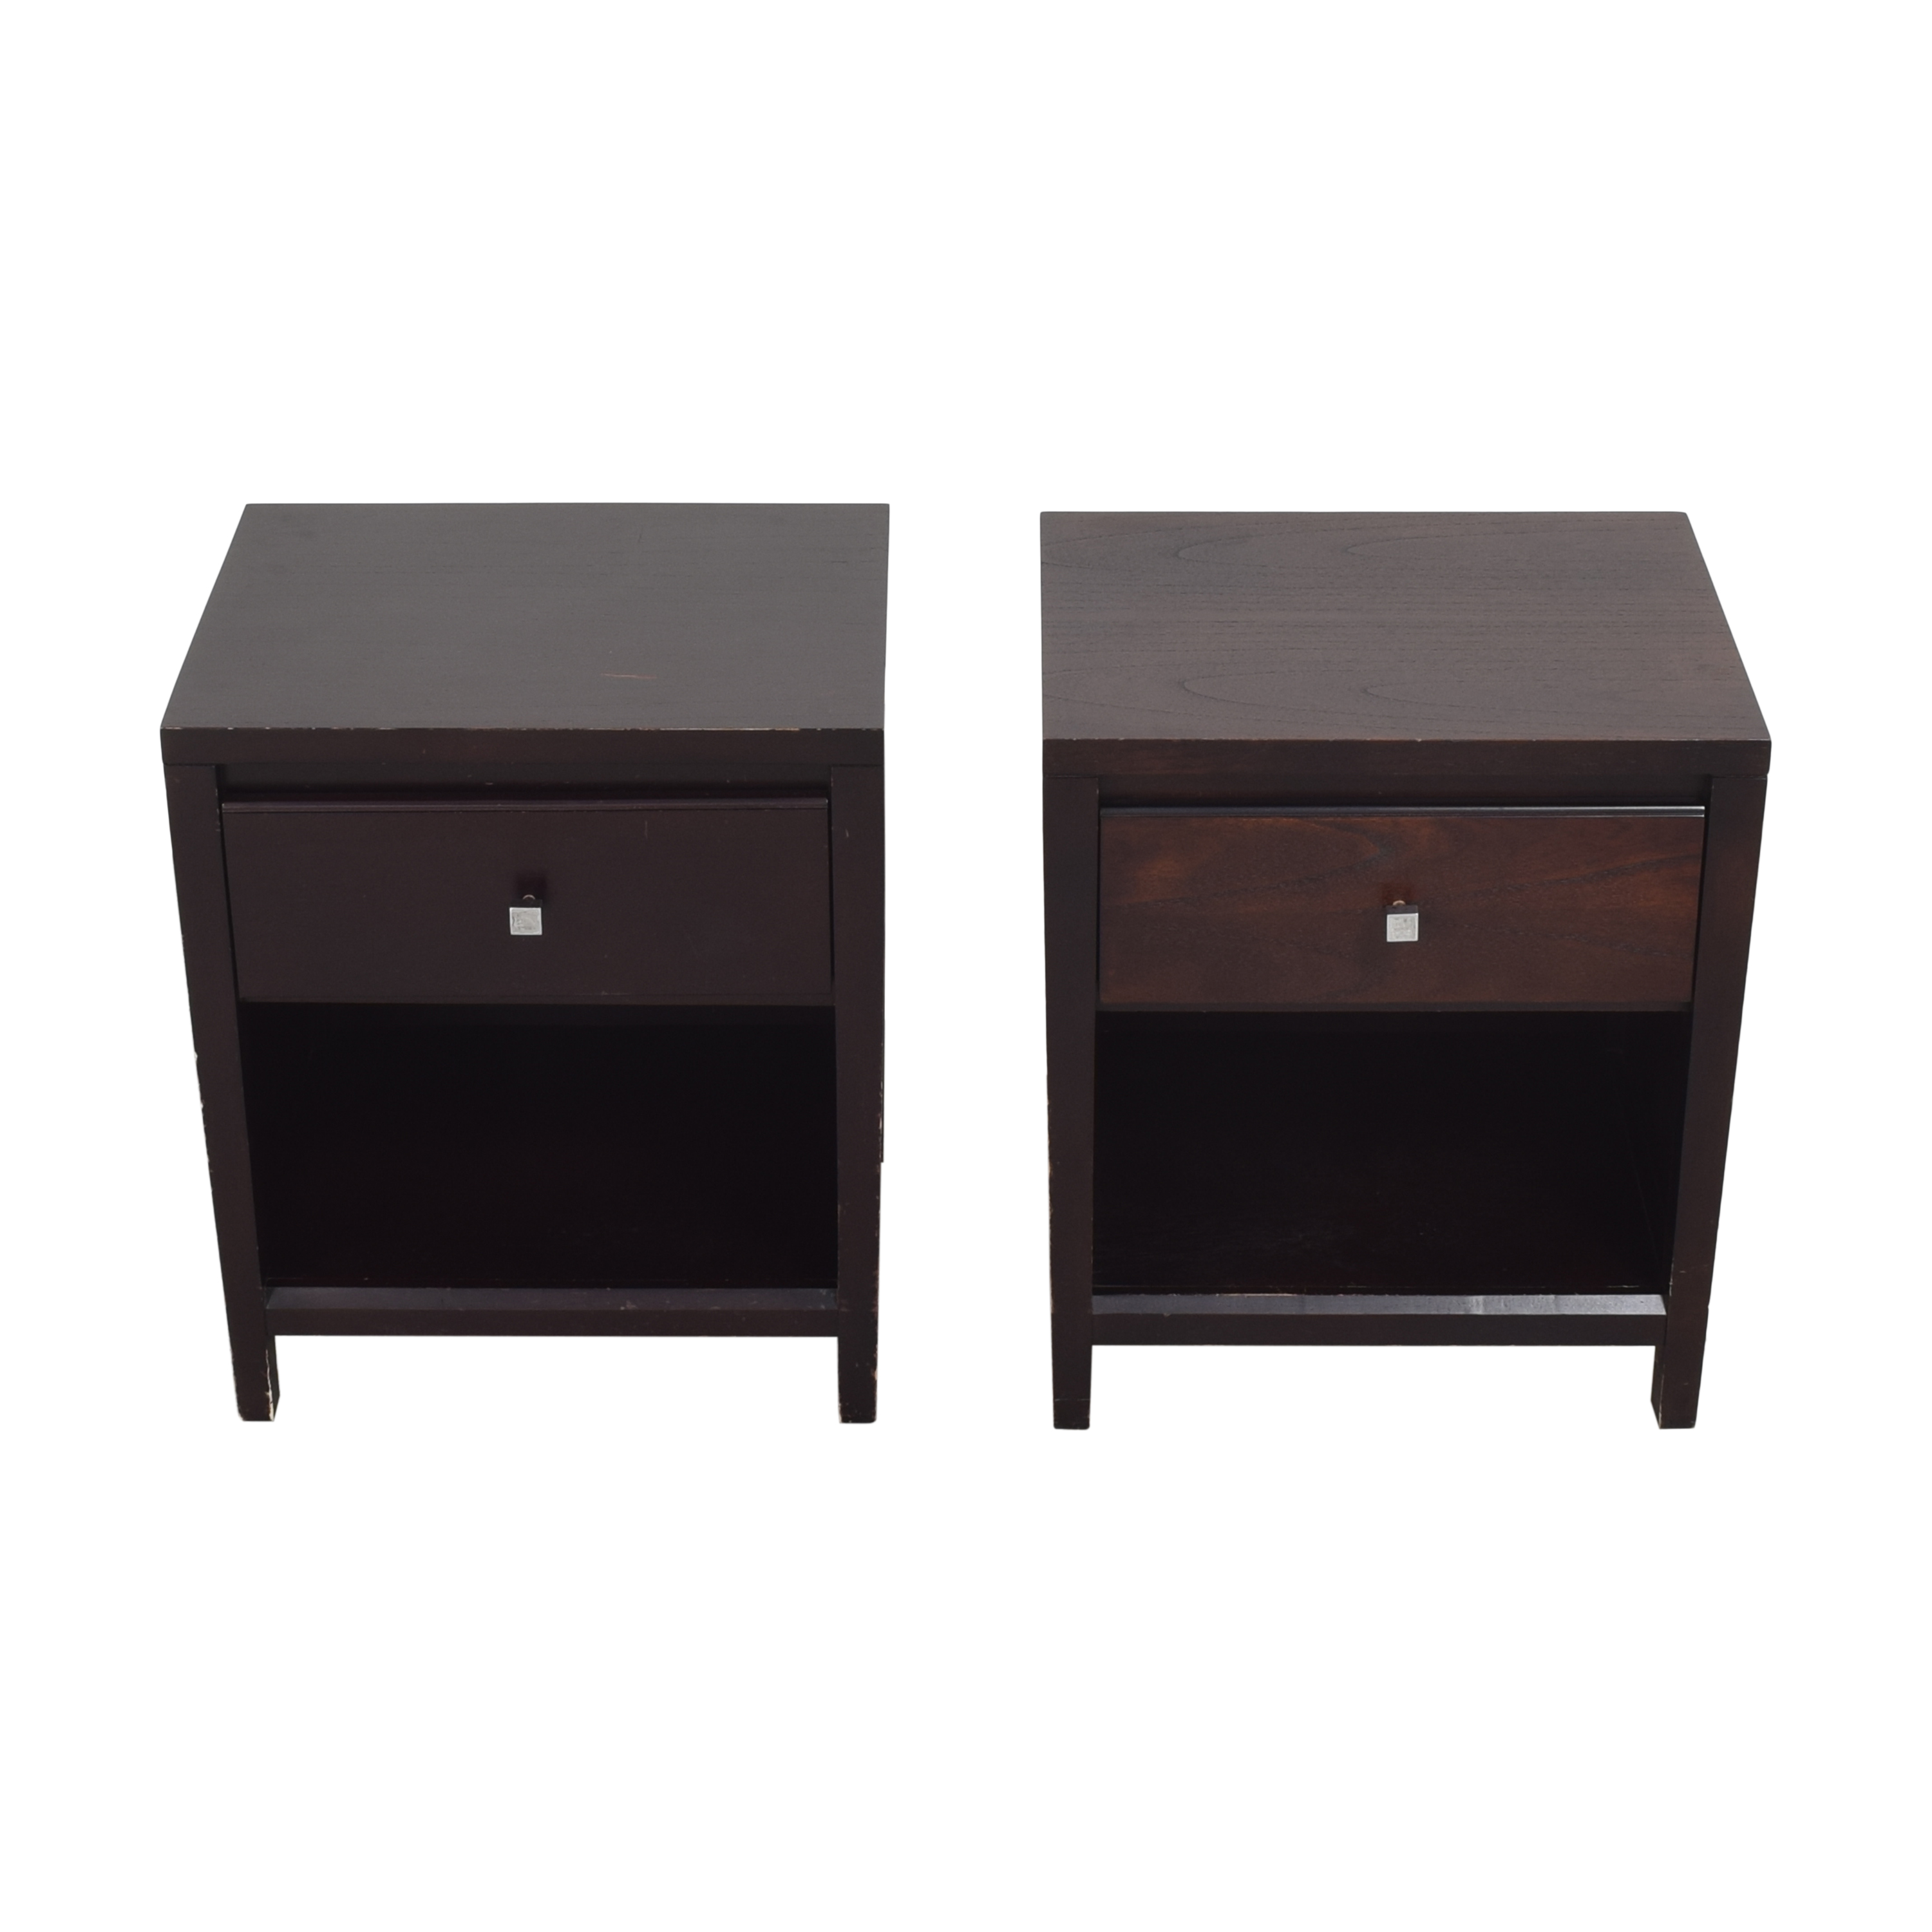 Z Gallerie Single Drawer Nightstands / Tables